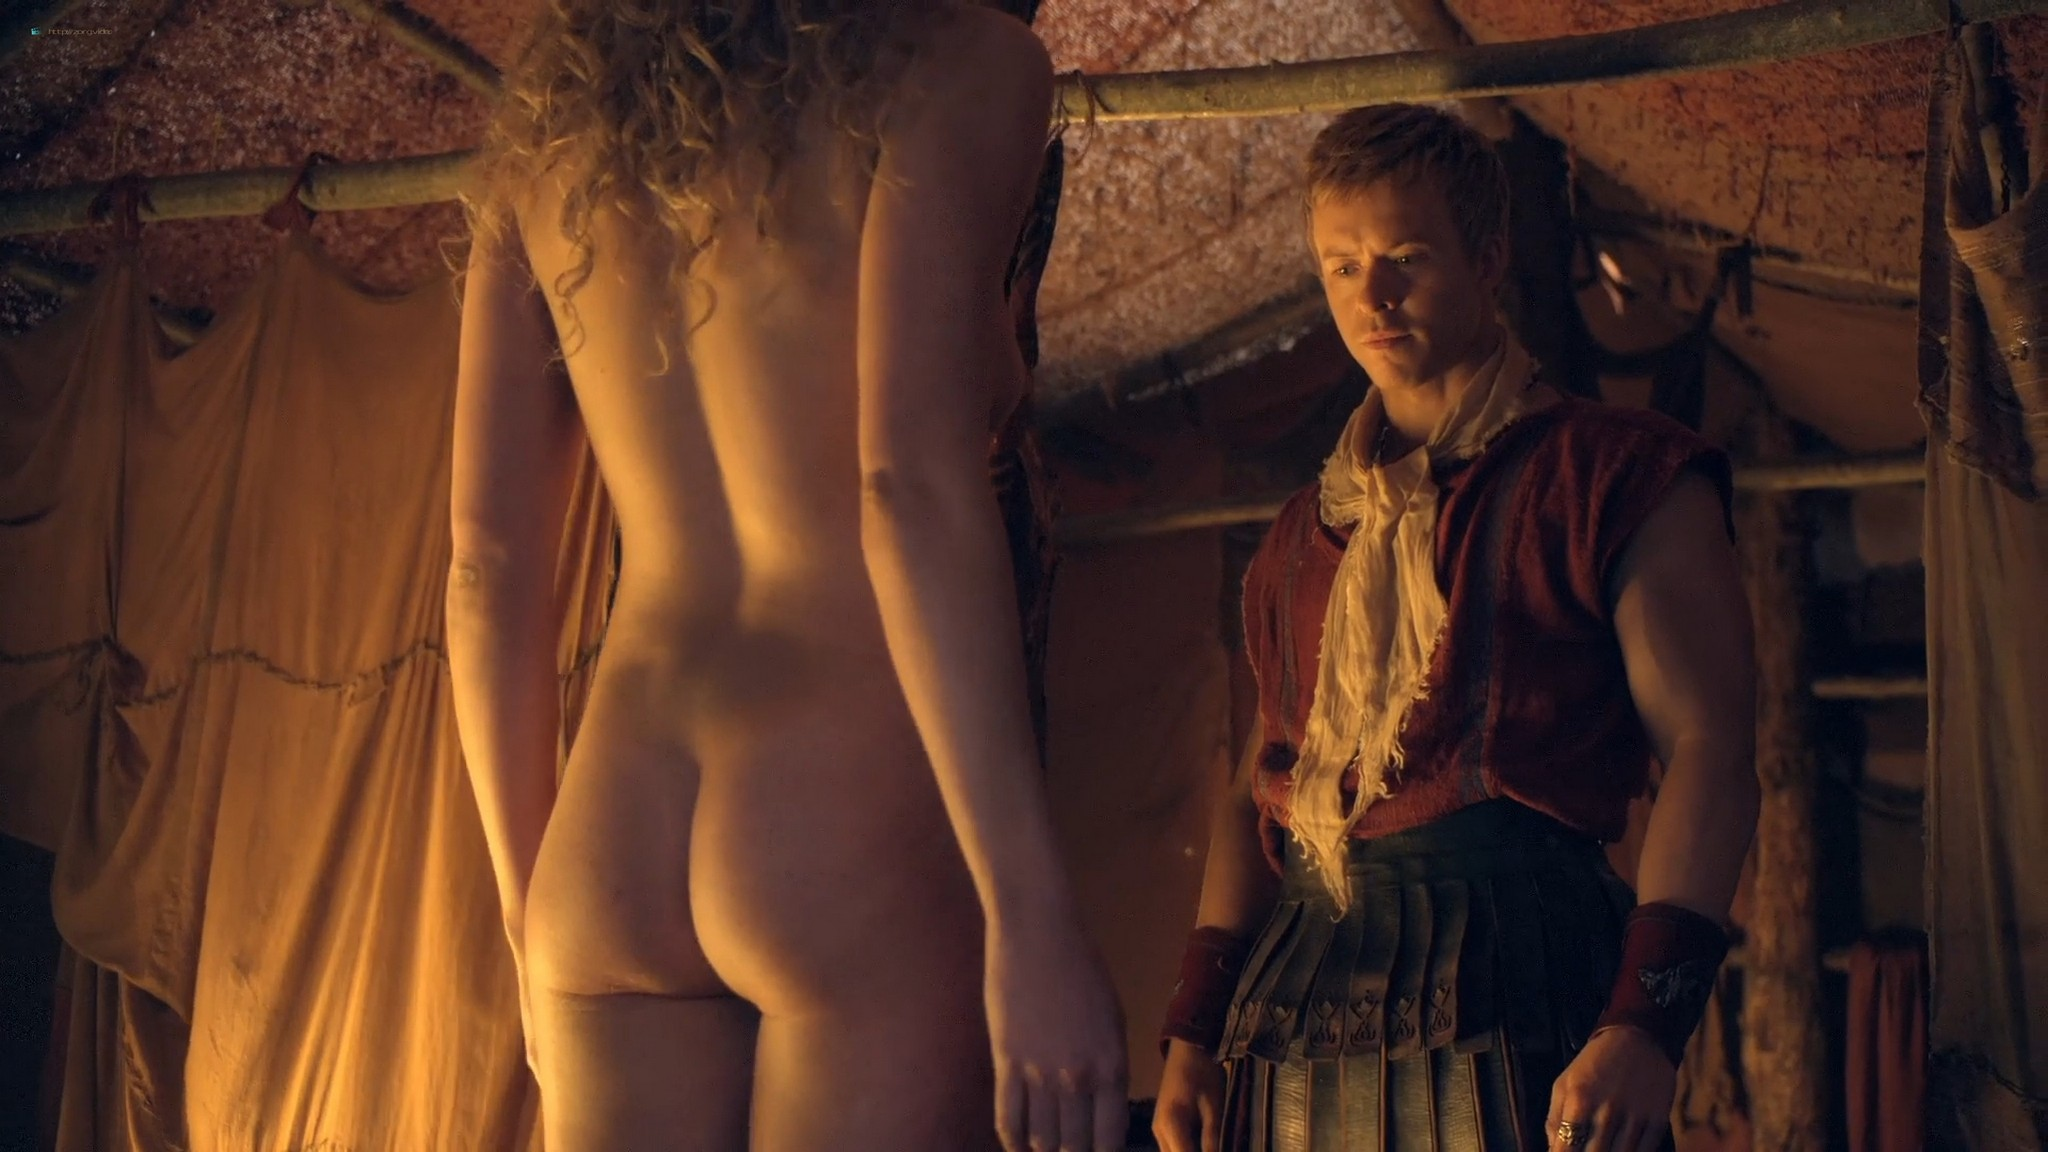 T Ann Robson nude full frontal Gwendoline Taylor nude too Spartacus 2013 s3e9 10 1080p BluRay 003